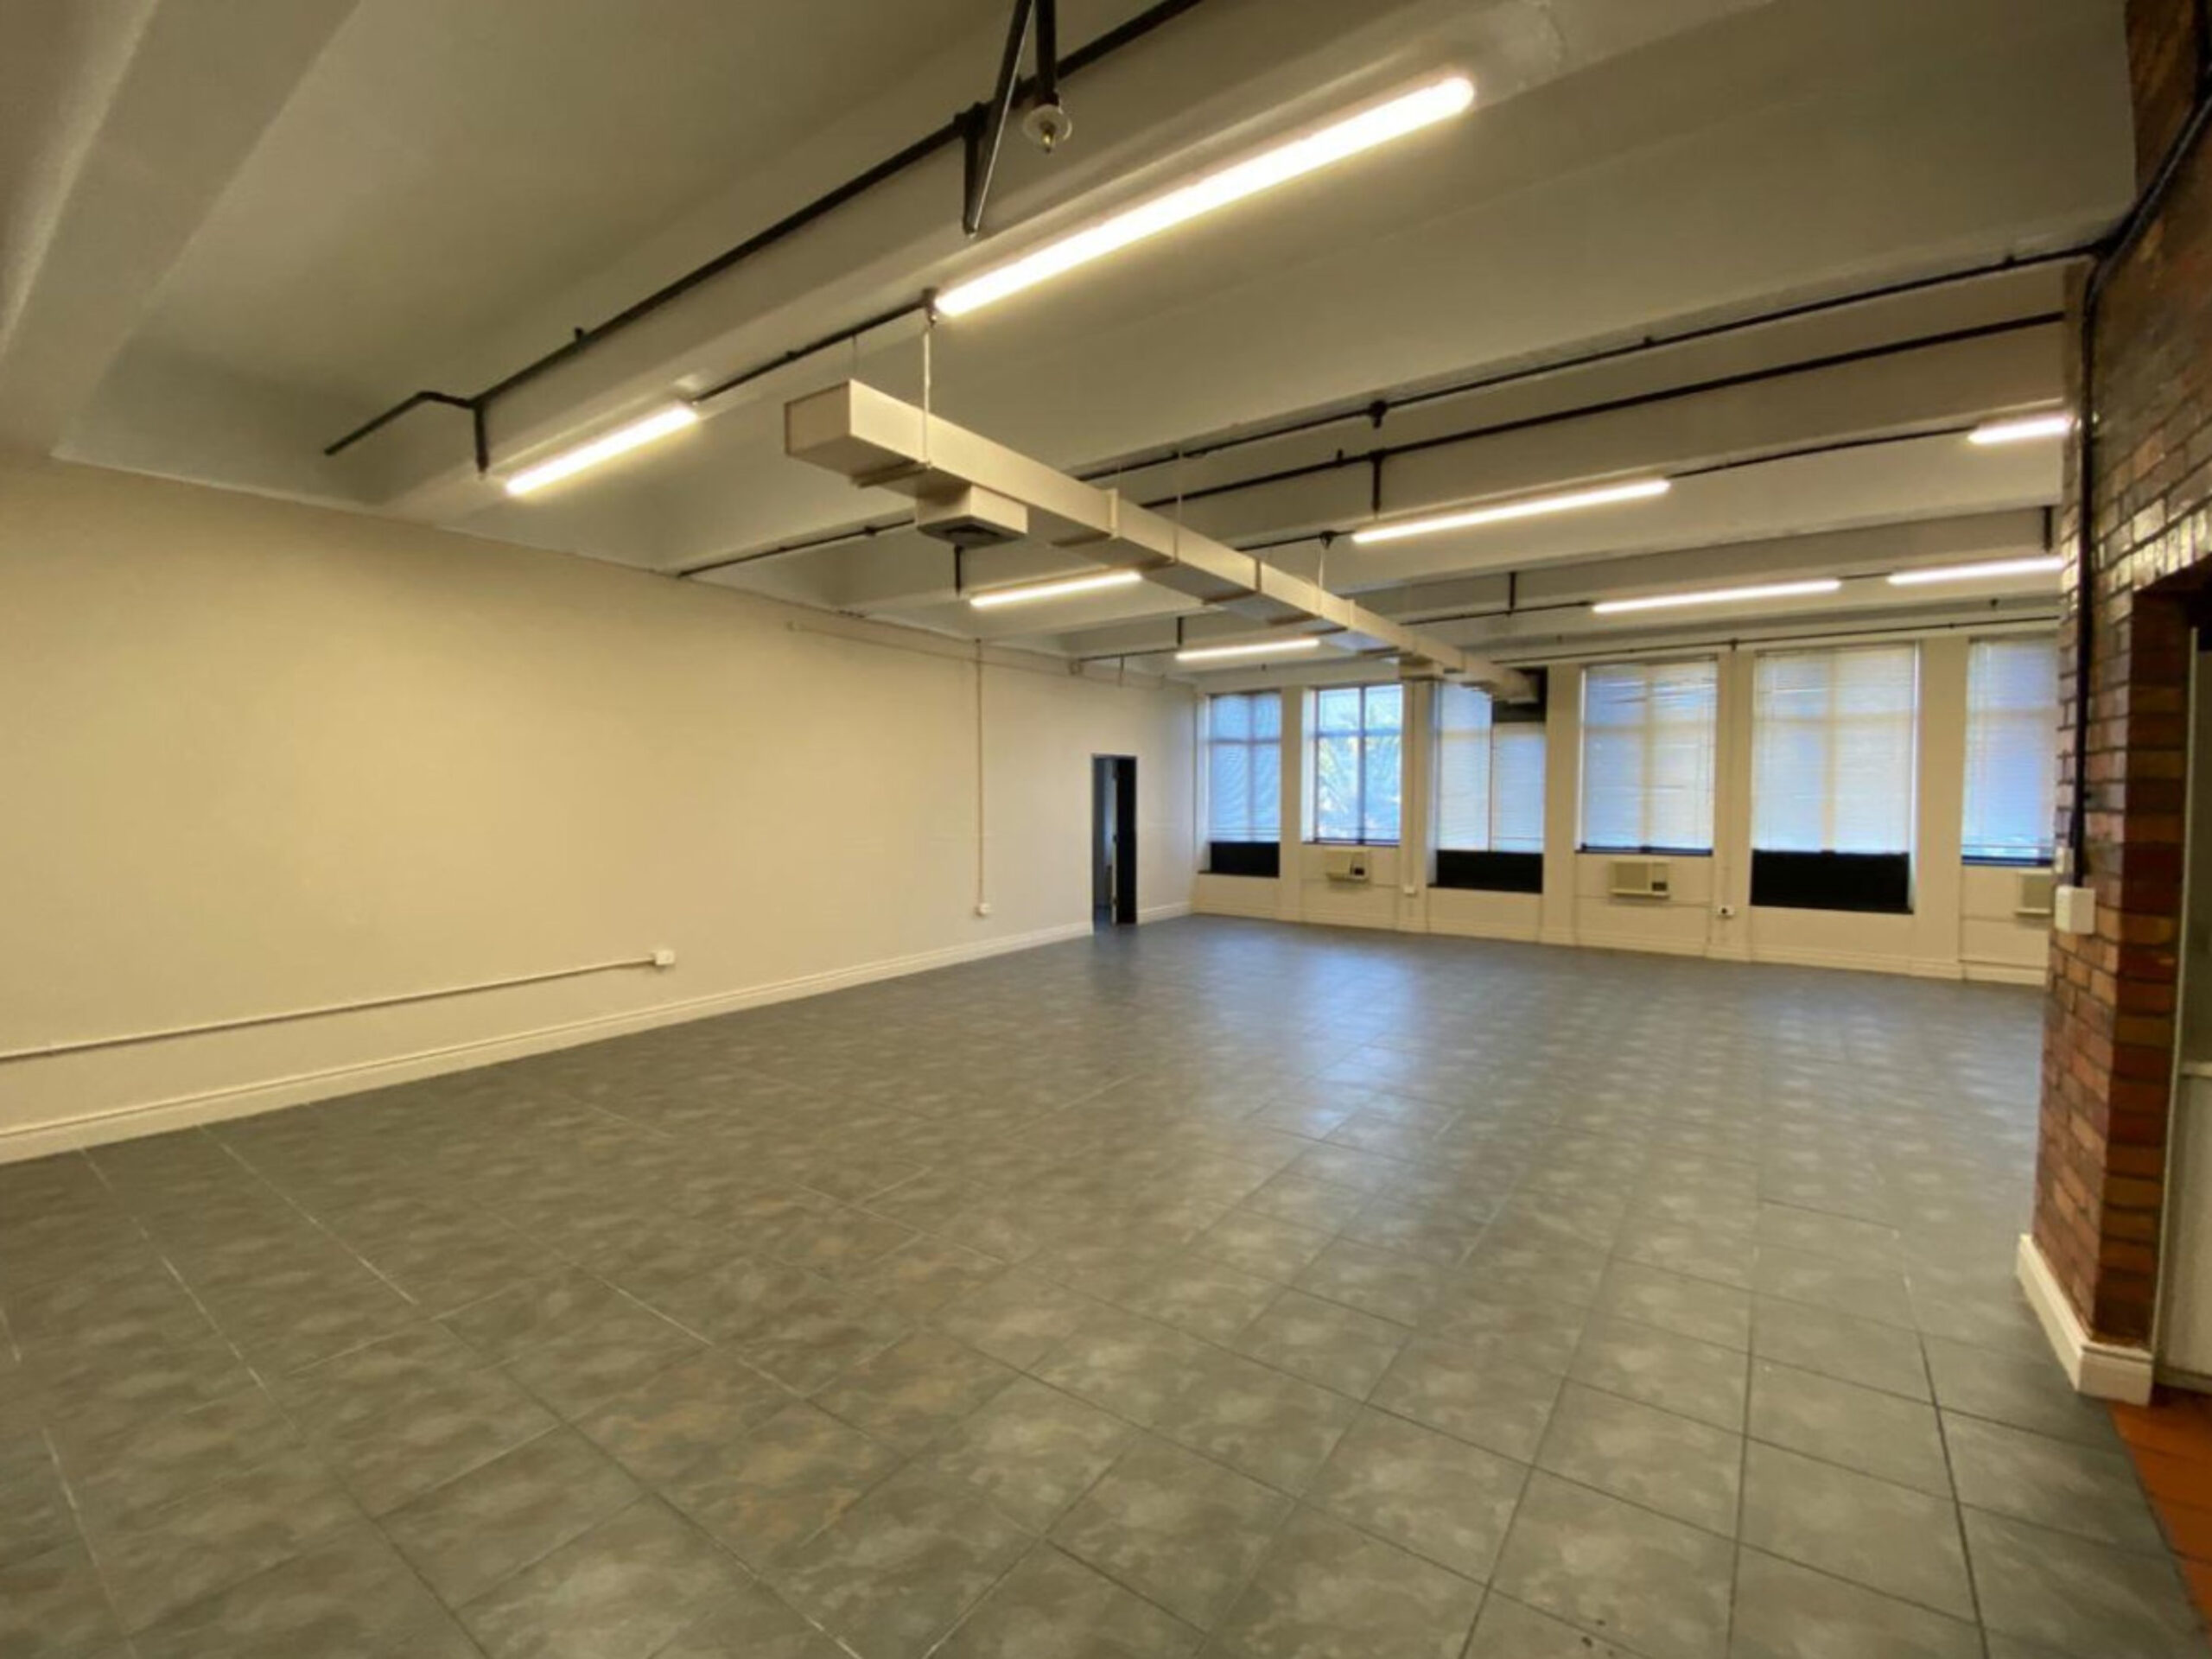 153 m² Office space to Rent Cape Town CBD 130 Bree Street